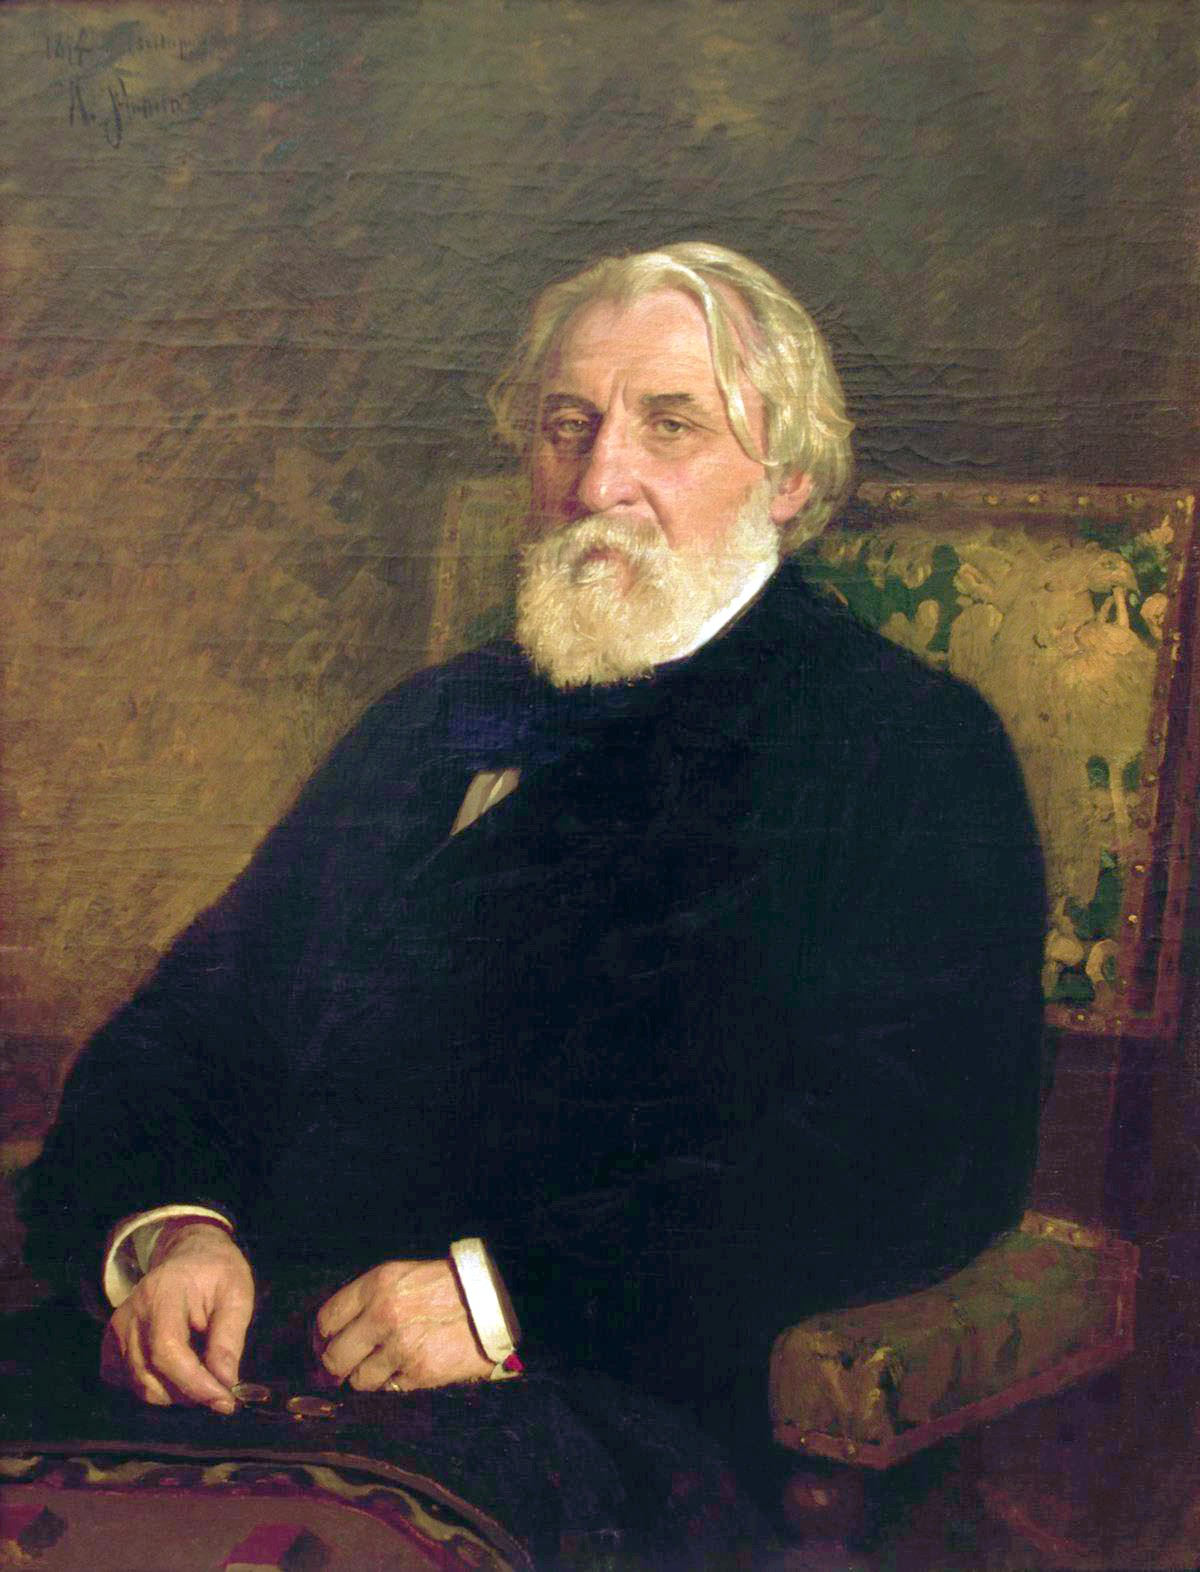 ilya-repin-portrait-of-the-author-ivan-turgenev-1874.jpg